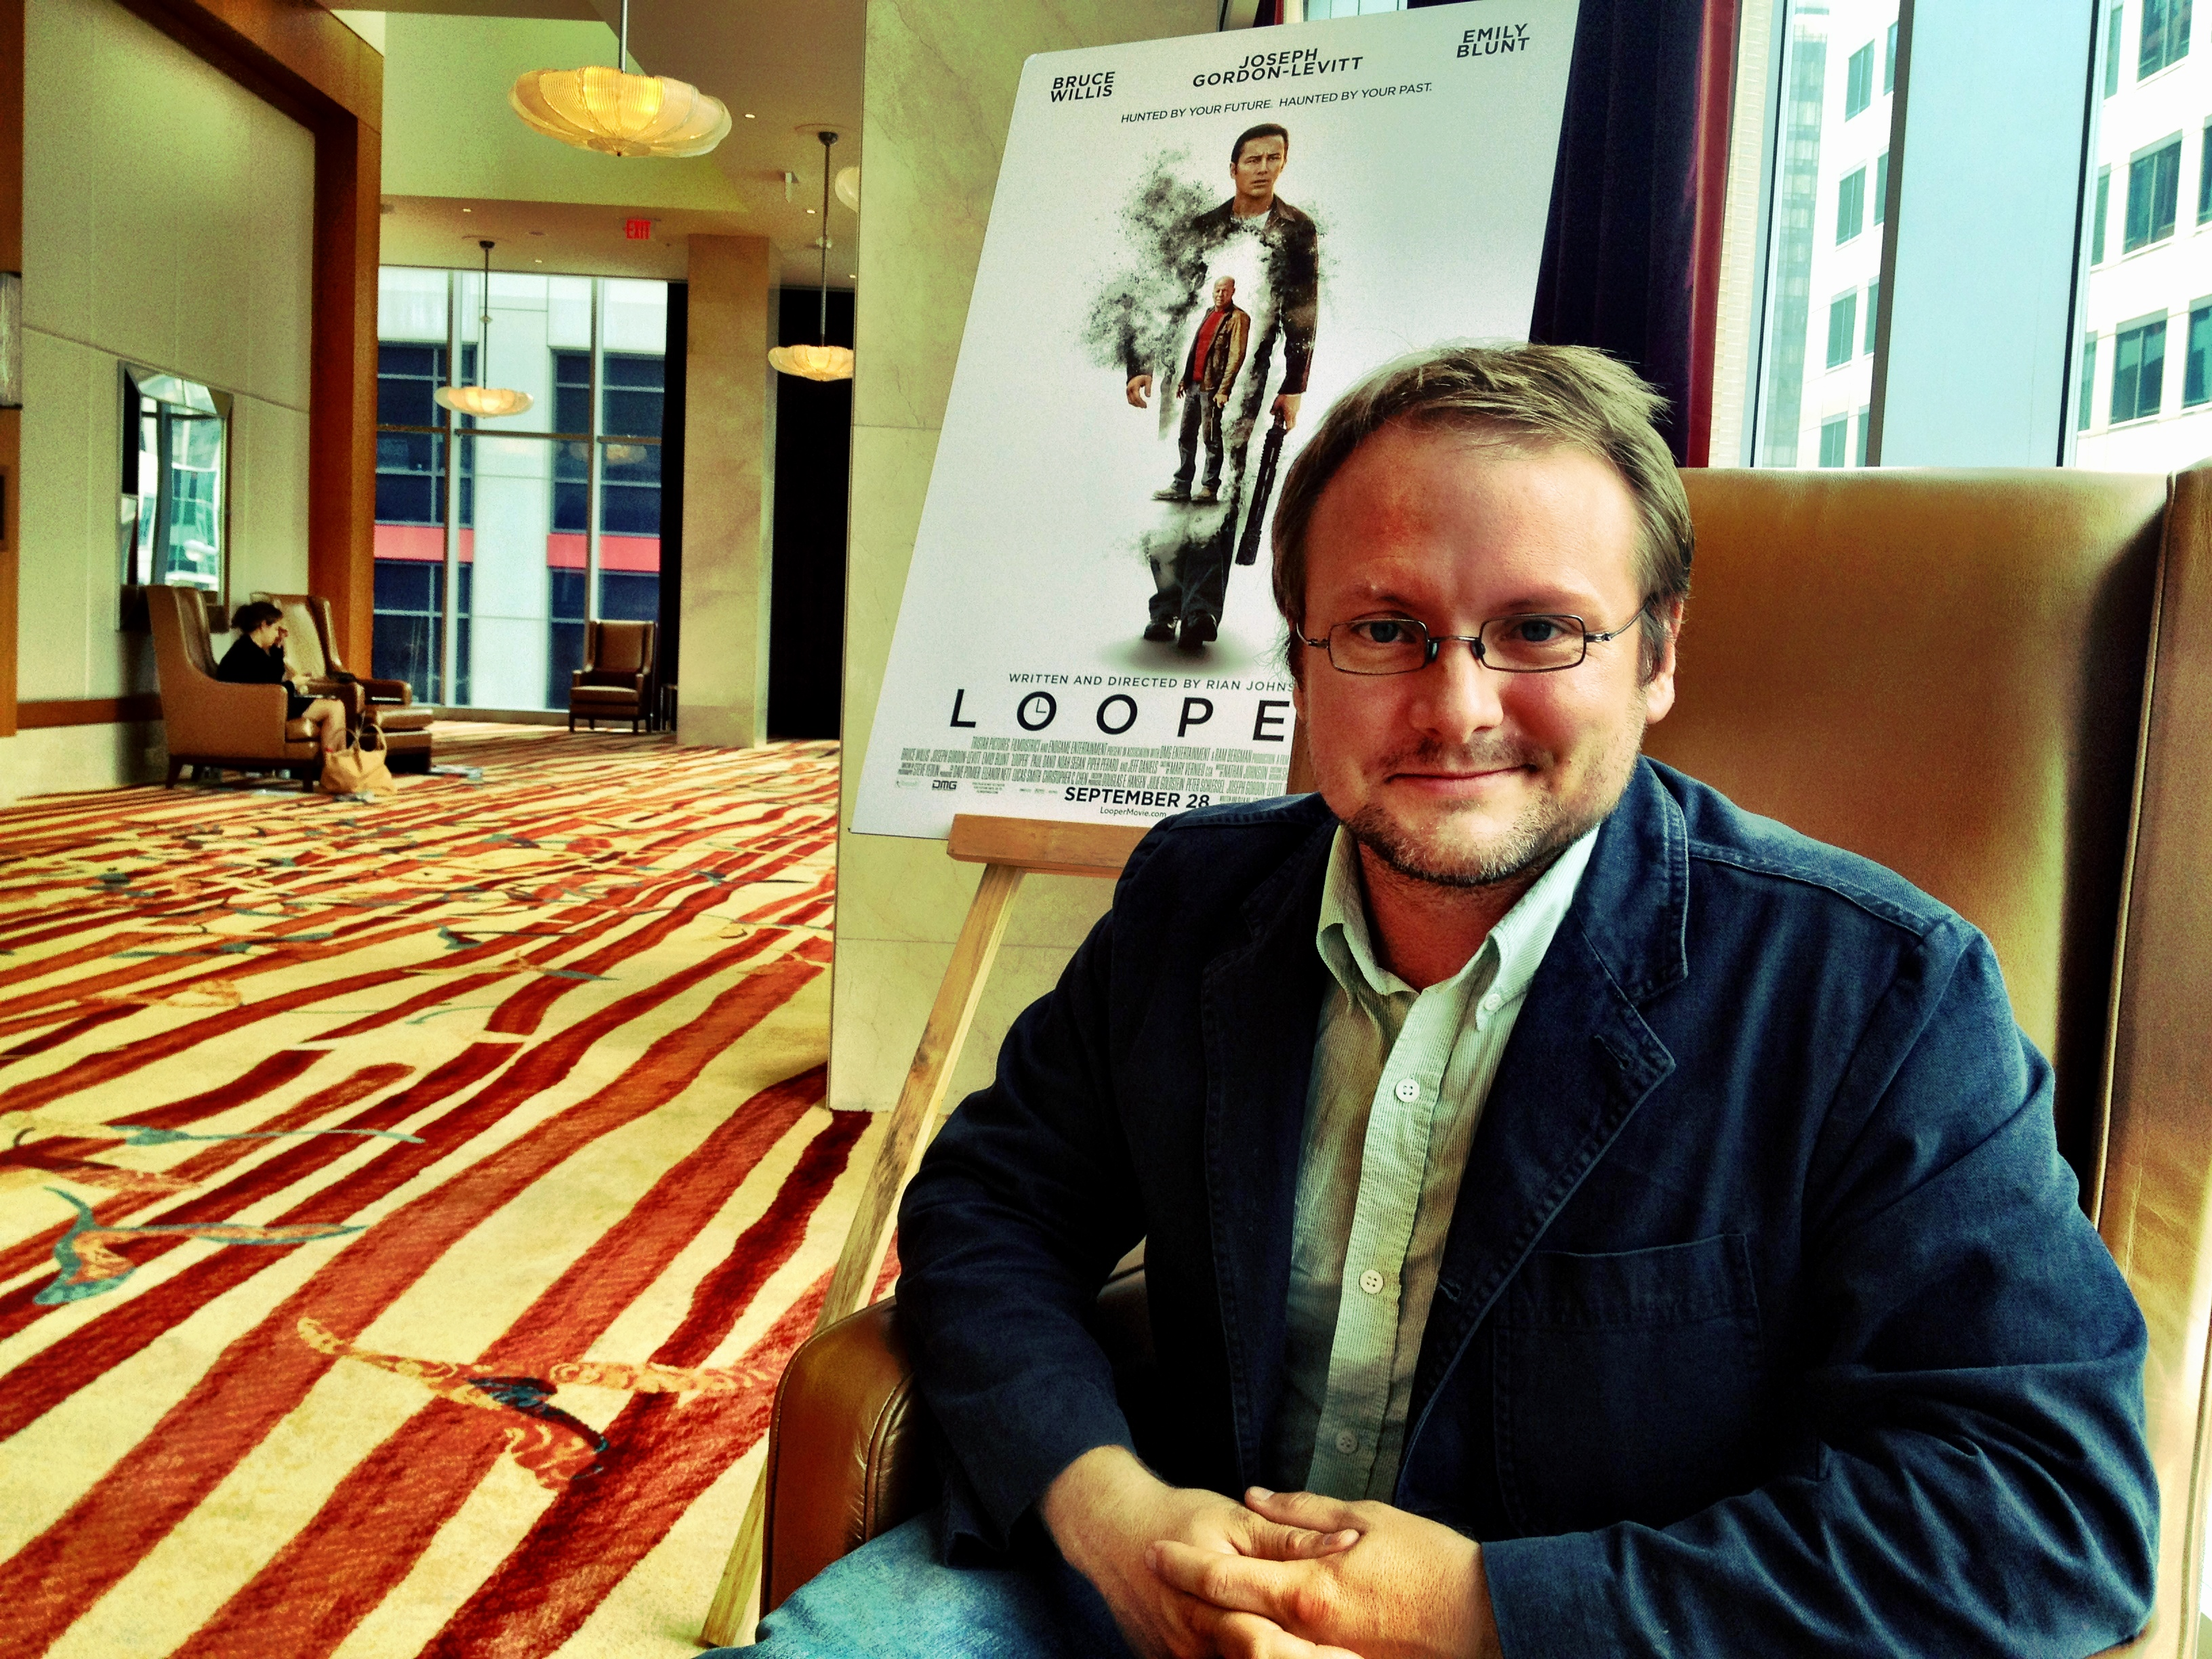 Yahoo! Movies sat down with 'Looper' director Rian Johnson on Friday. (Photo: Jonathan Crow/ Yahoo! Movies)